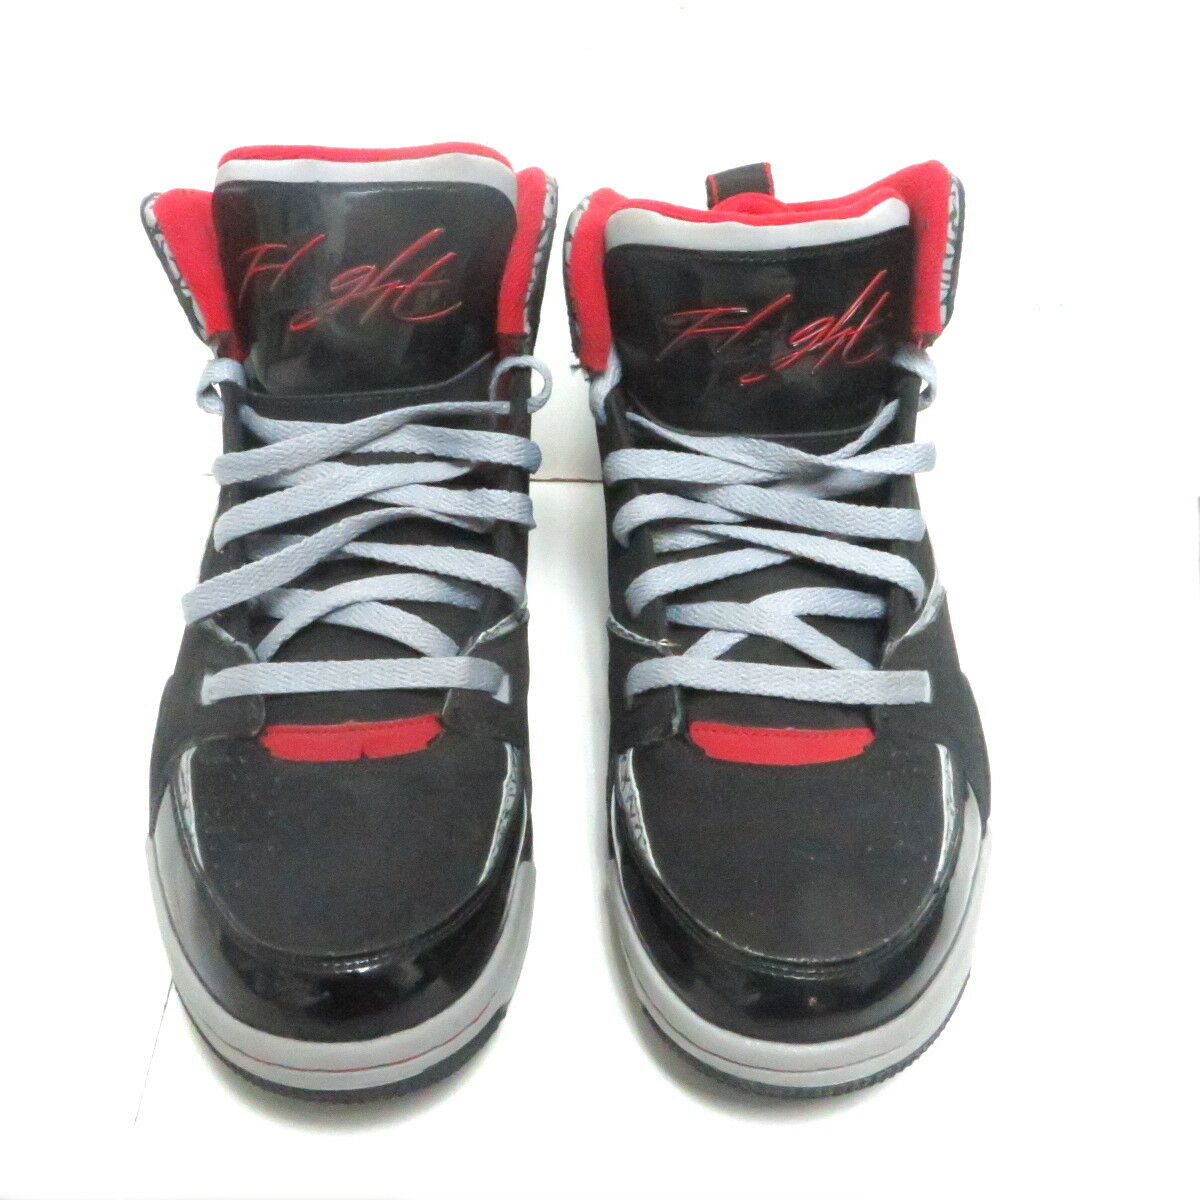 JORDAN - 454050-011 - JORDAN AIR SC-2 zapatillas Talla 10